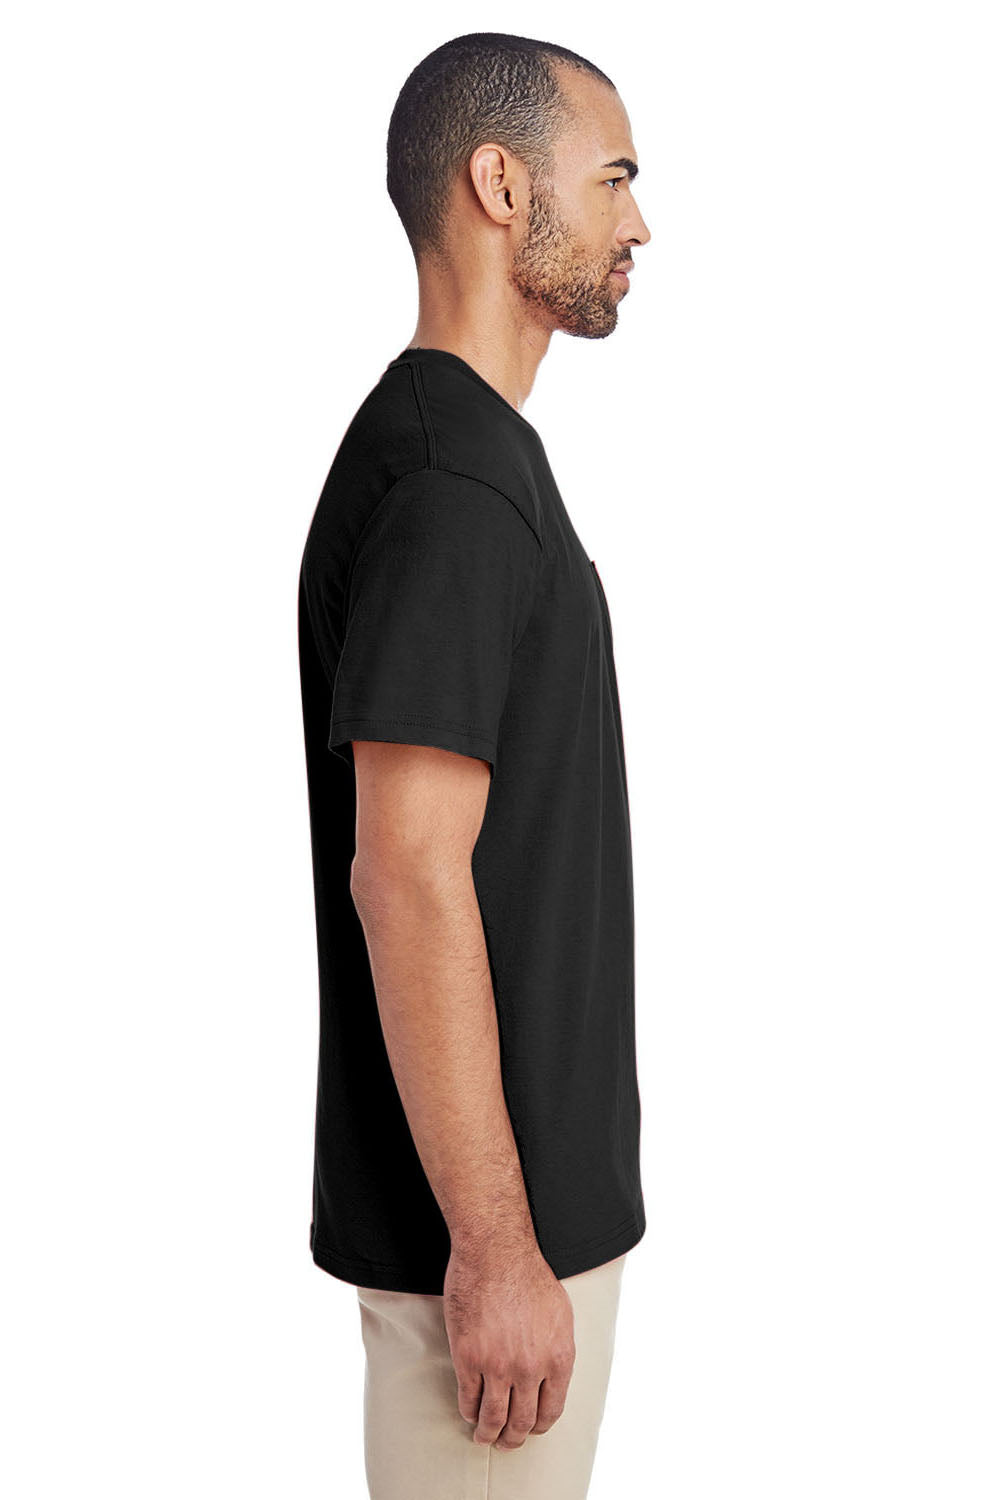 Gildan H300 Mens Hammer Short Sleeve Crewneck T-Shirt w/ Pocket Black Side